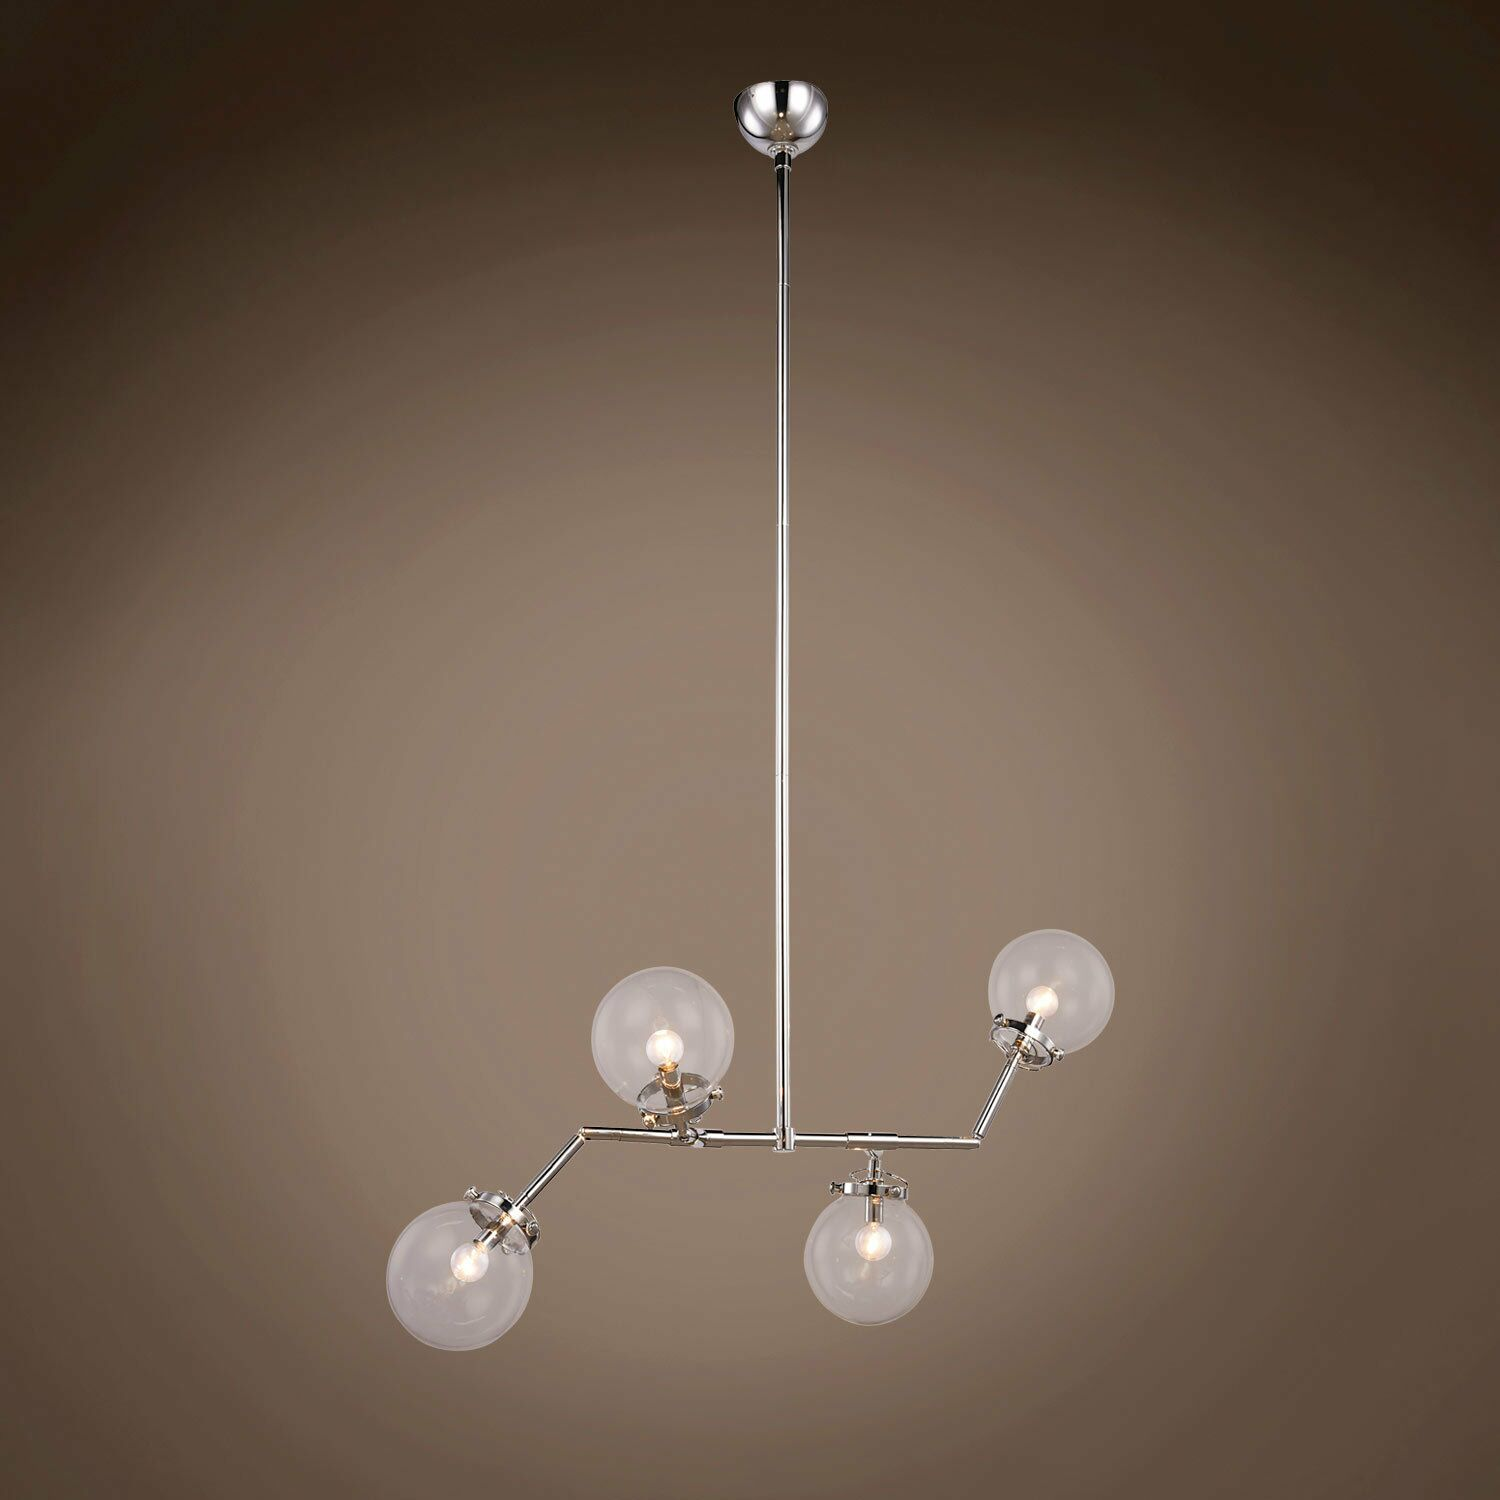 Chairez 4-Light Chandelier Finish: Polished Nickel